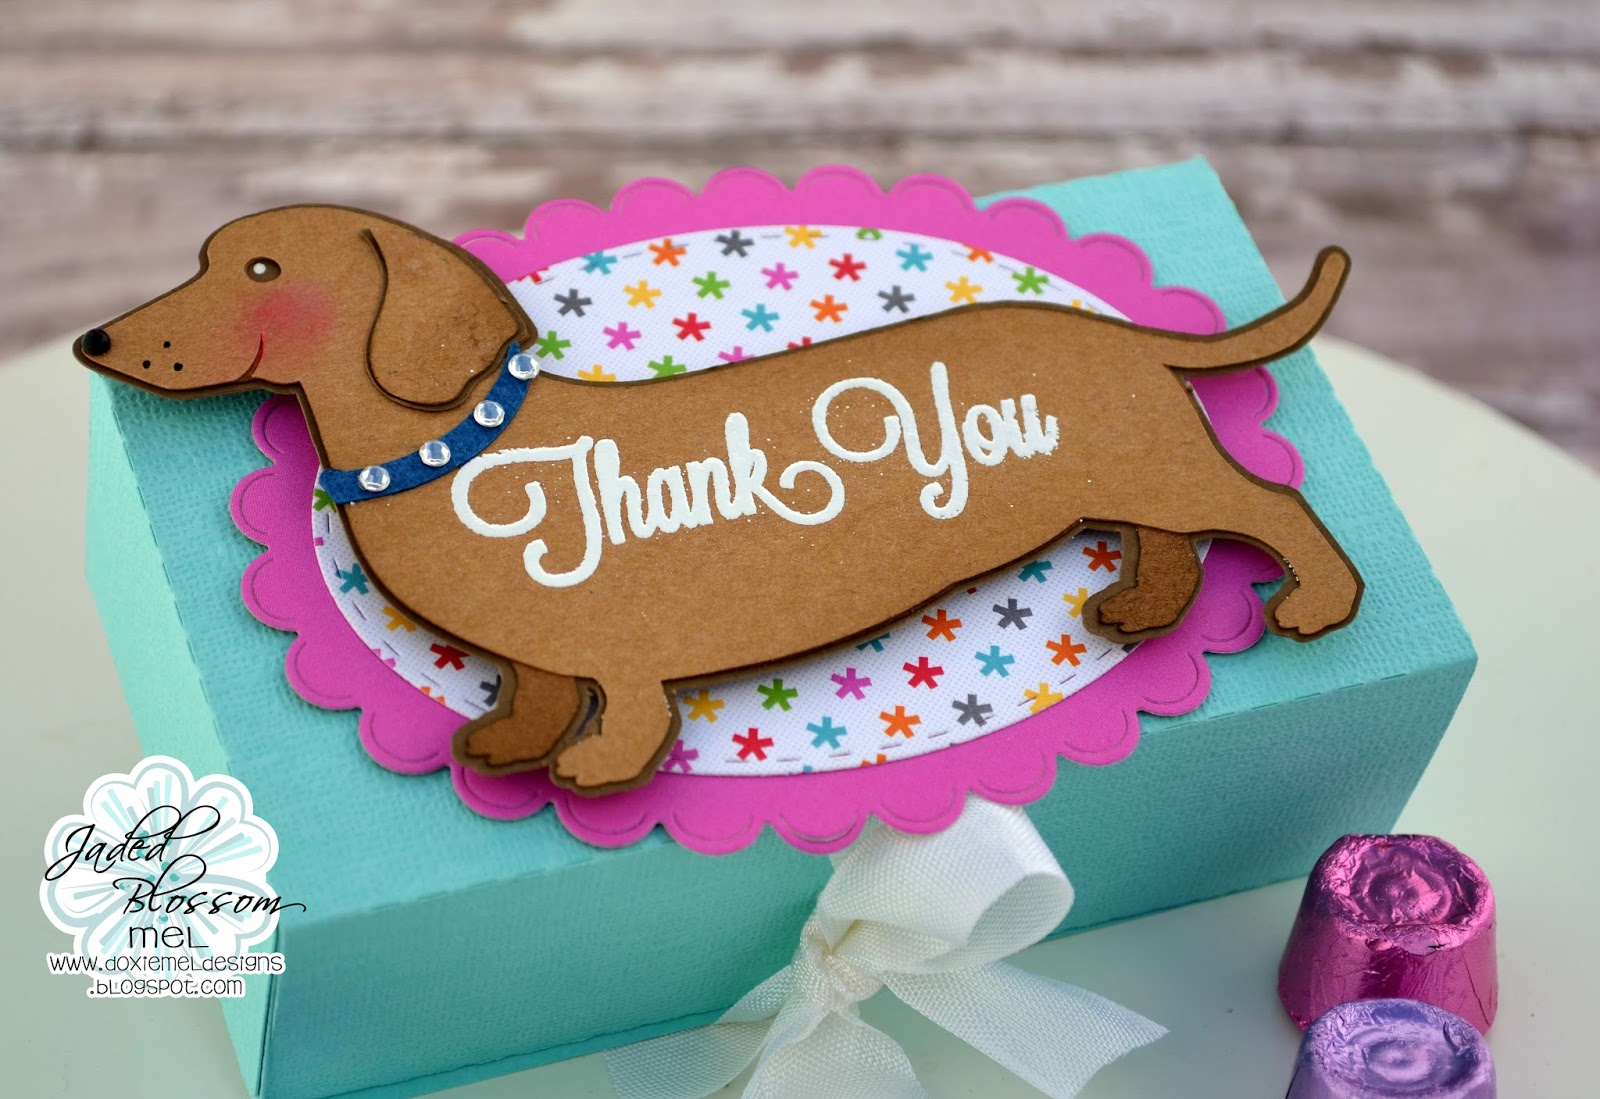 Doxie Mel Designs Sausage Dog Thank You